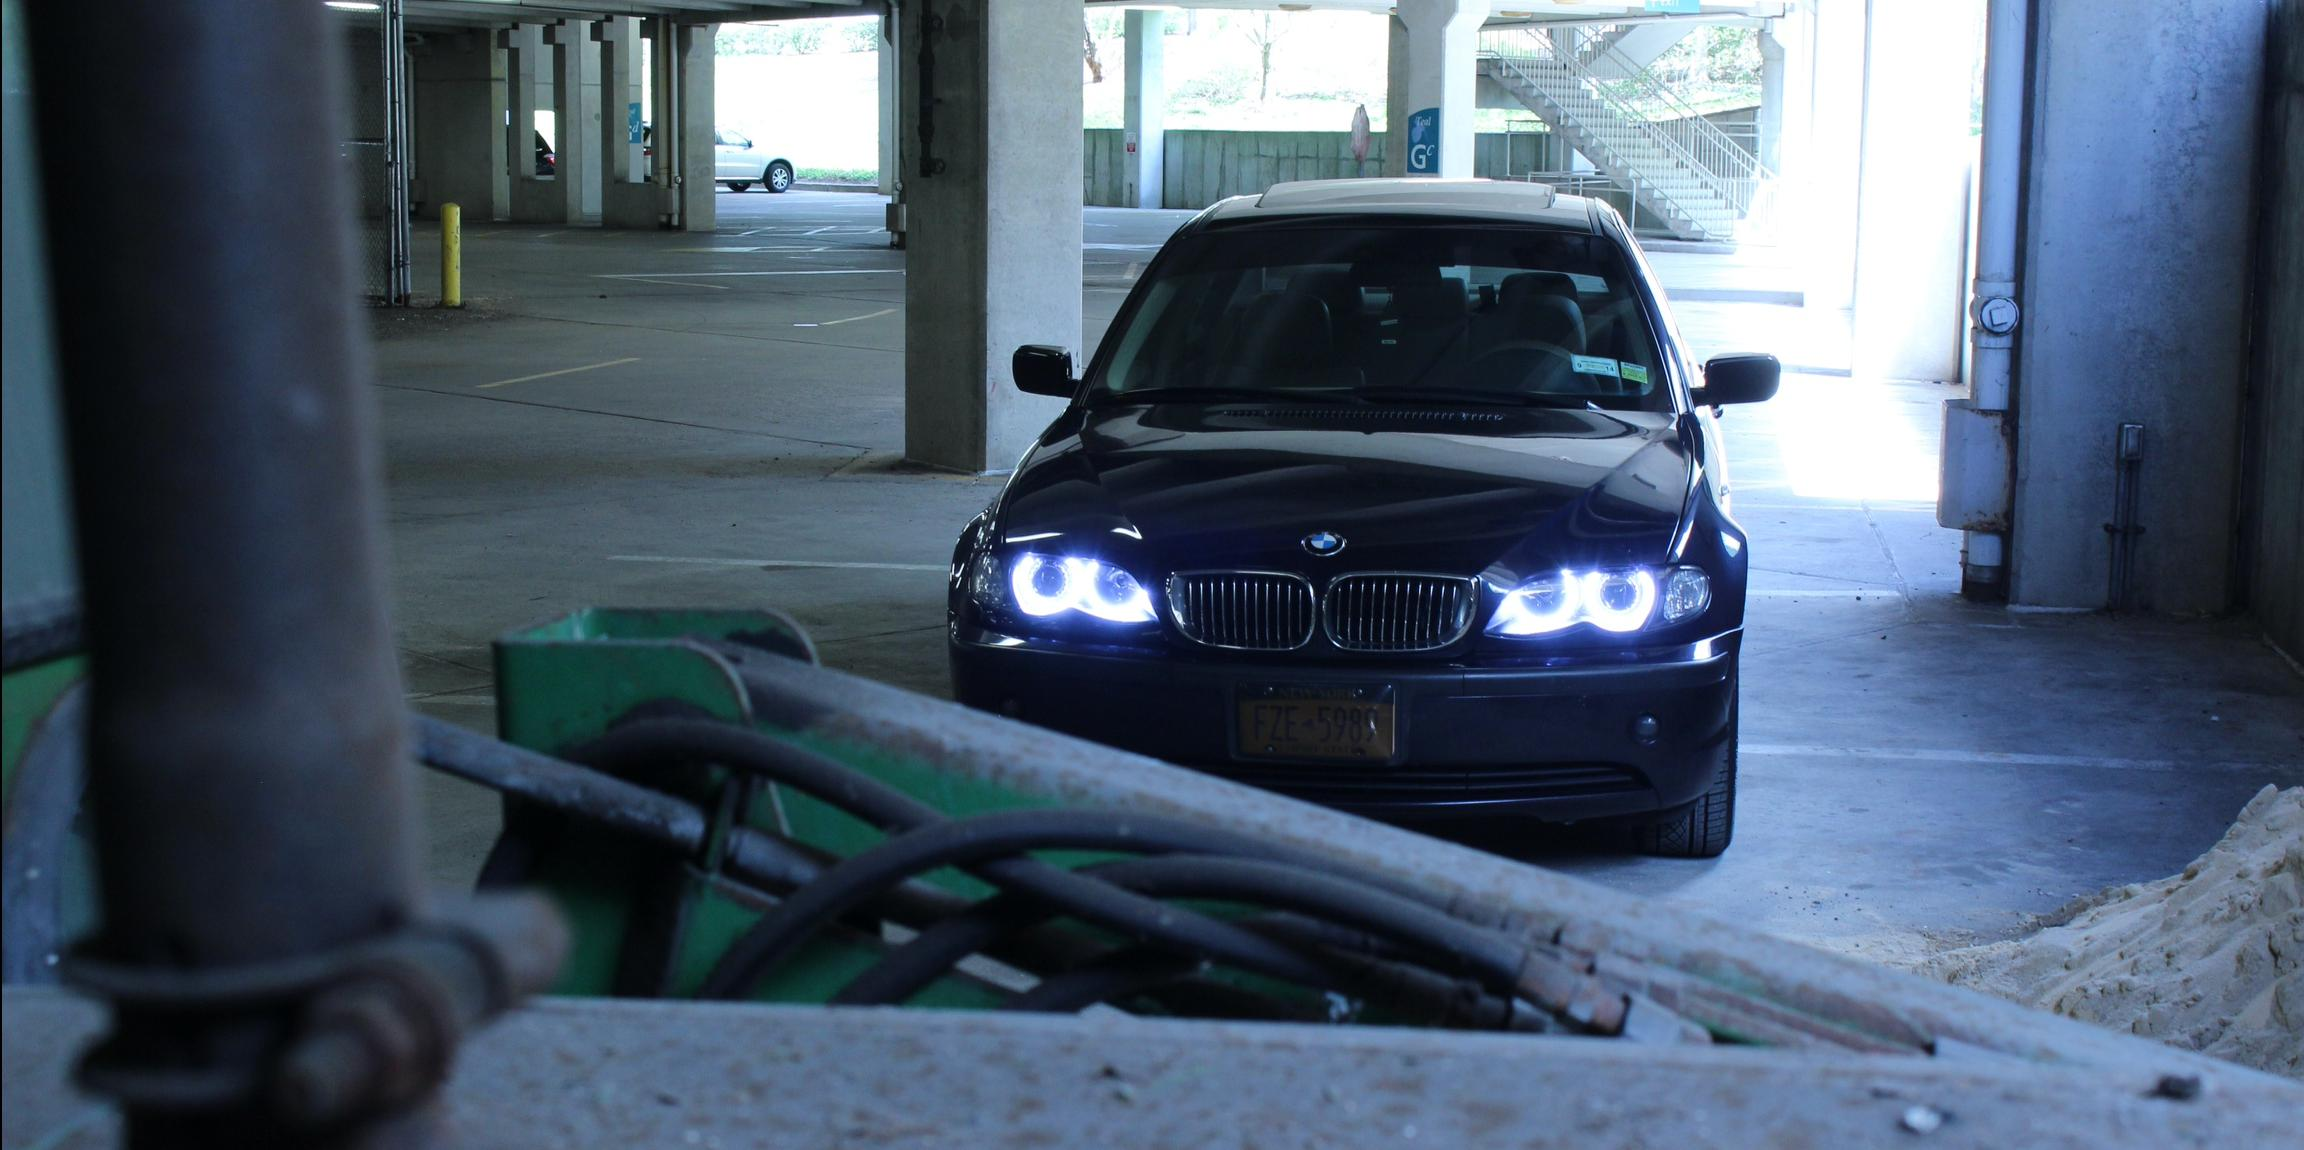 bimmer_e46's 2005 BMW 3 Series